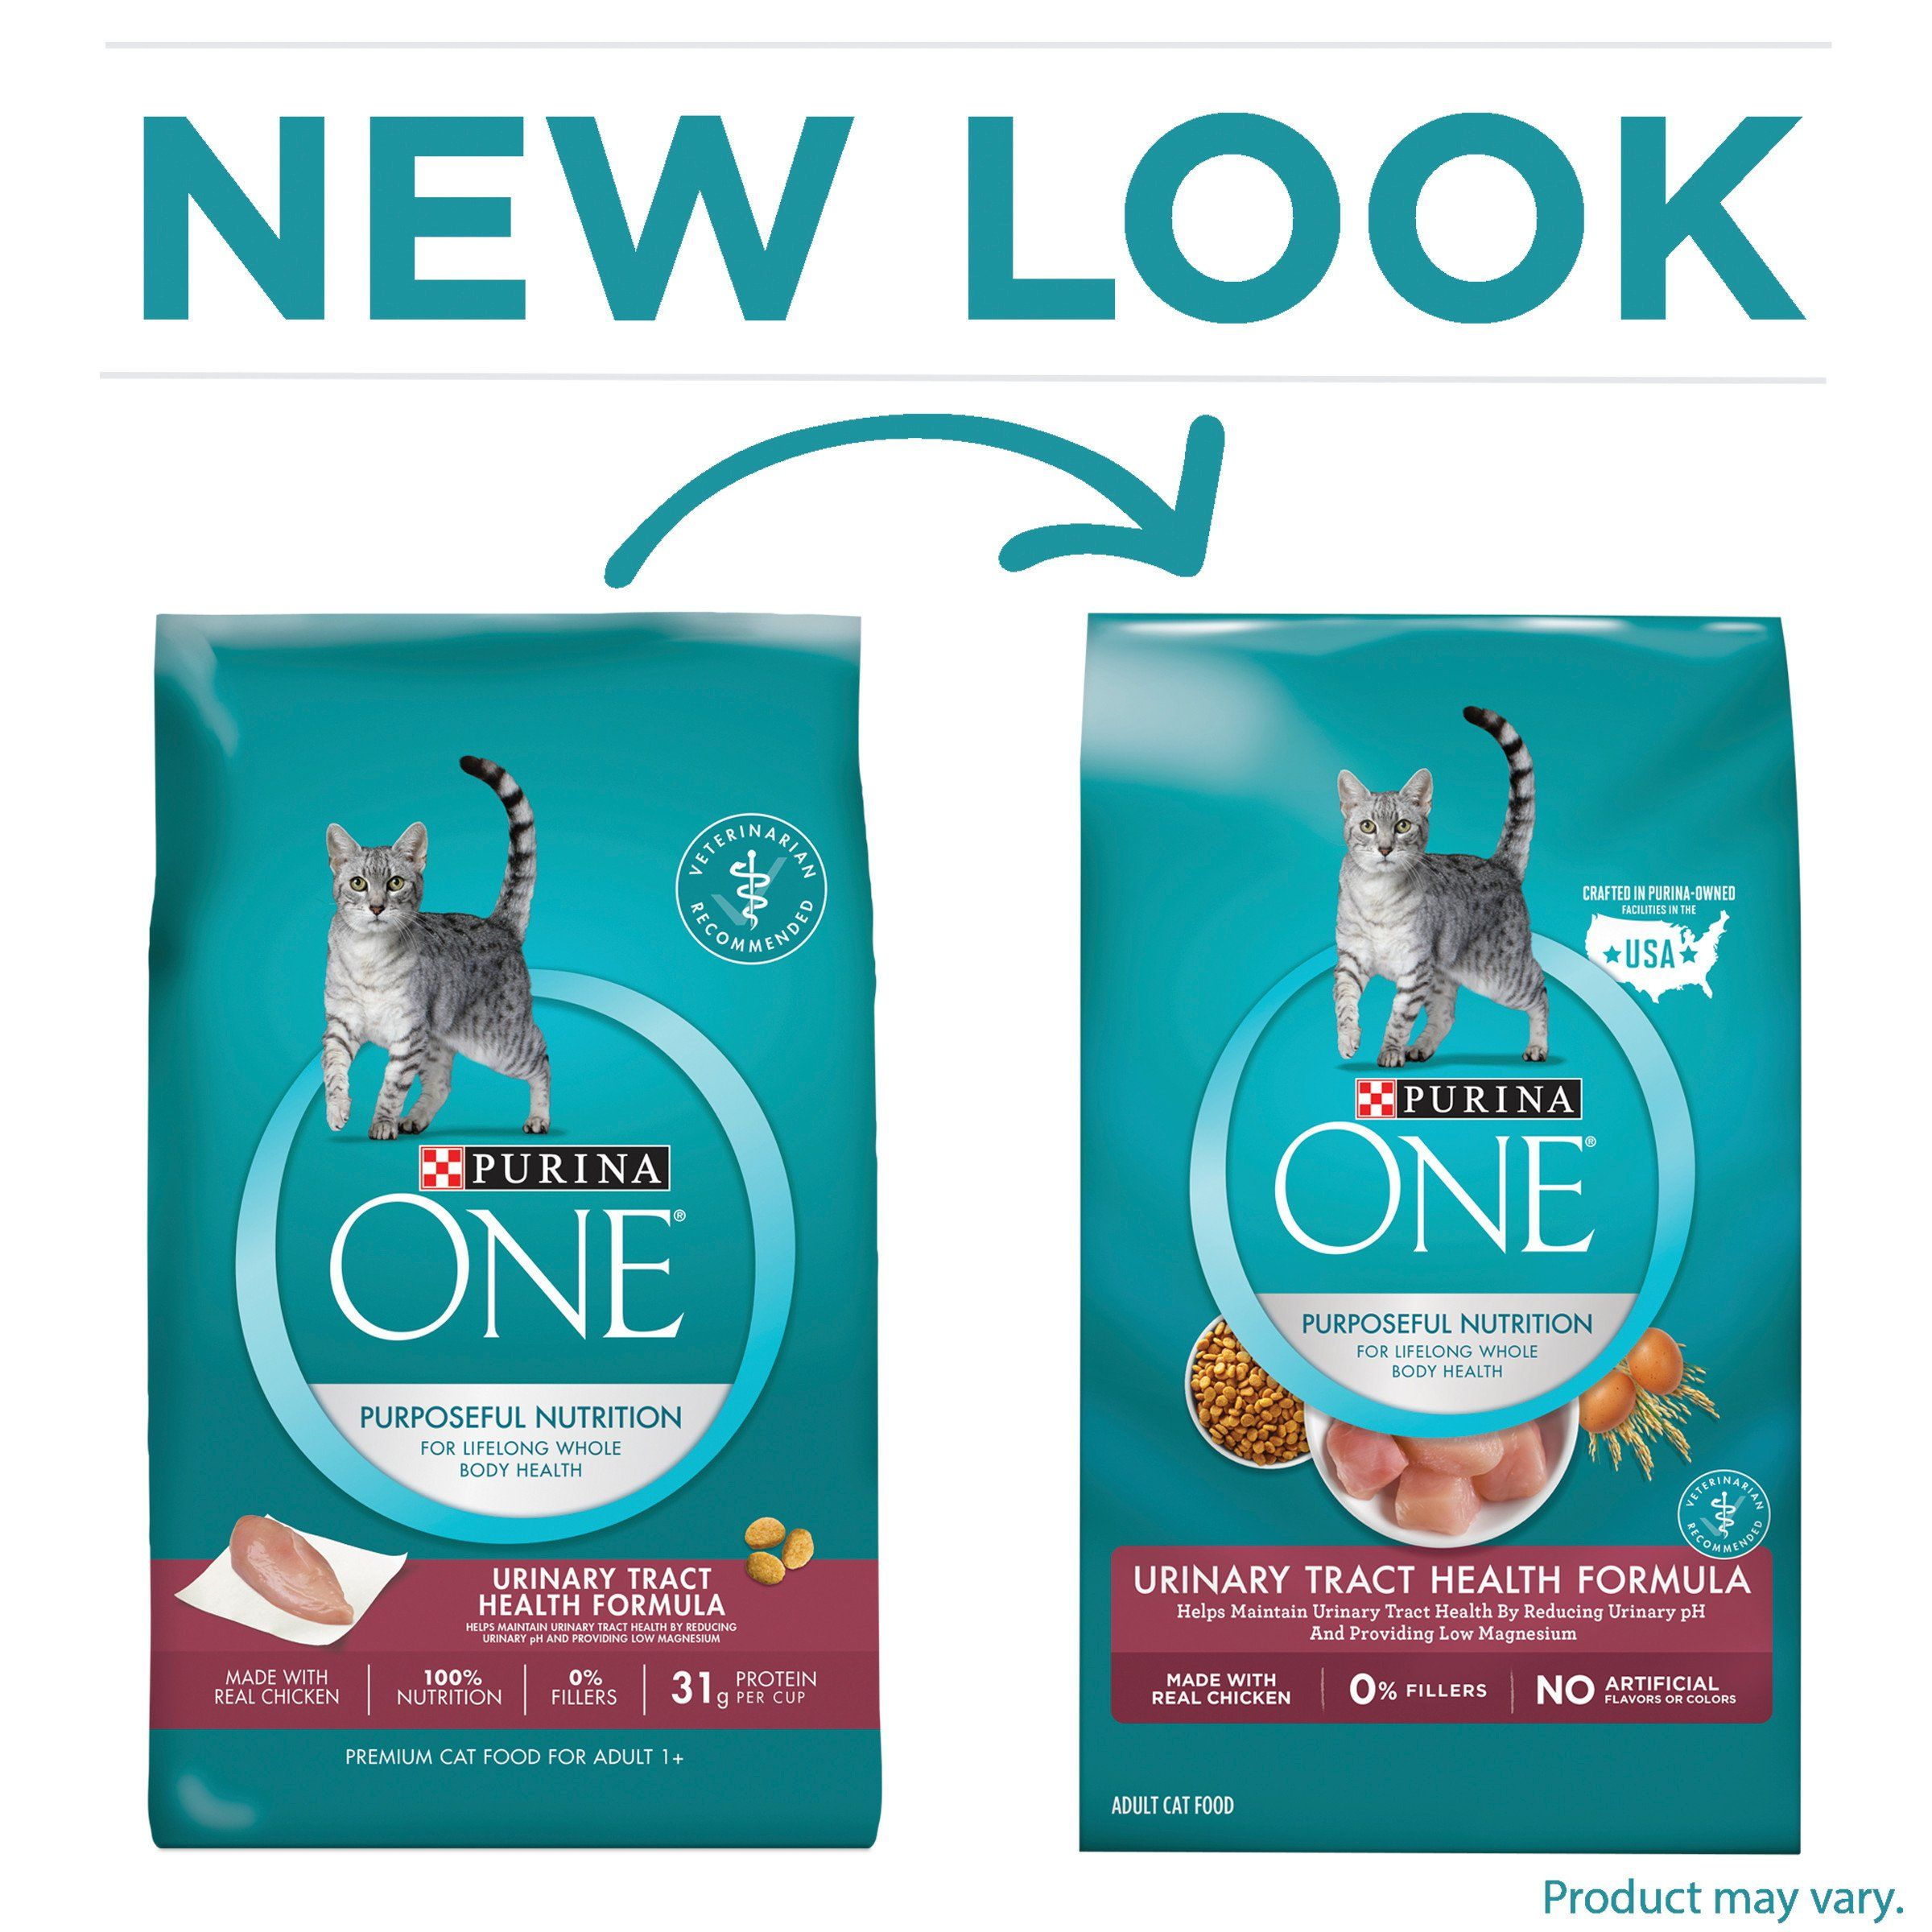 Purina One Urinary Tract Health Formula Dry Cat Food Read More Reviews Of The Product By Visiting The Link On The Image This Dry Cat Food Purina Cat Food